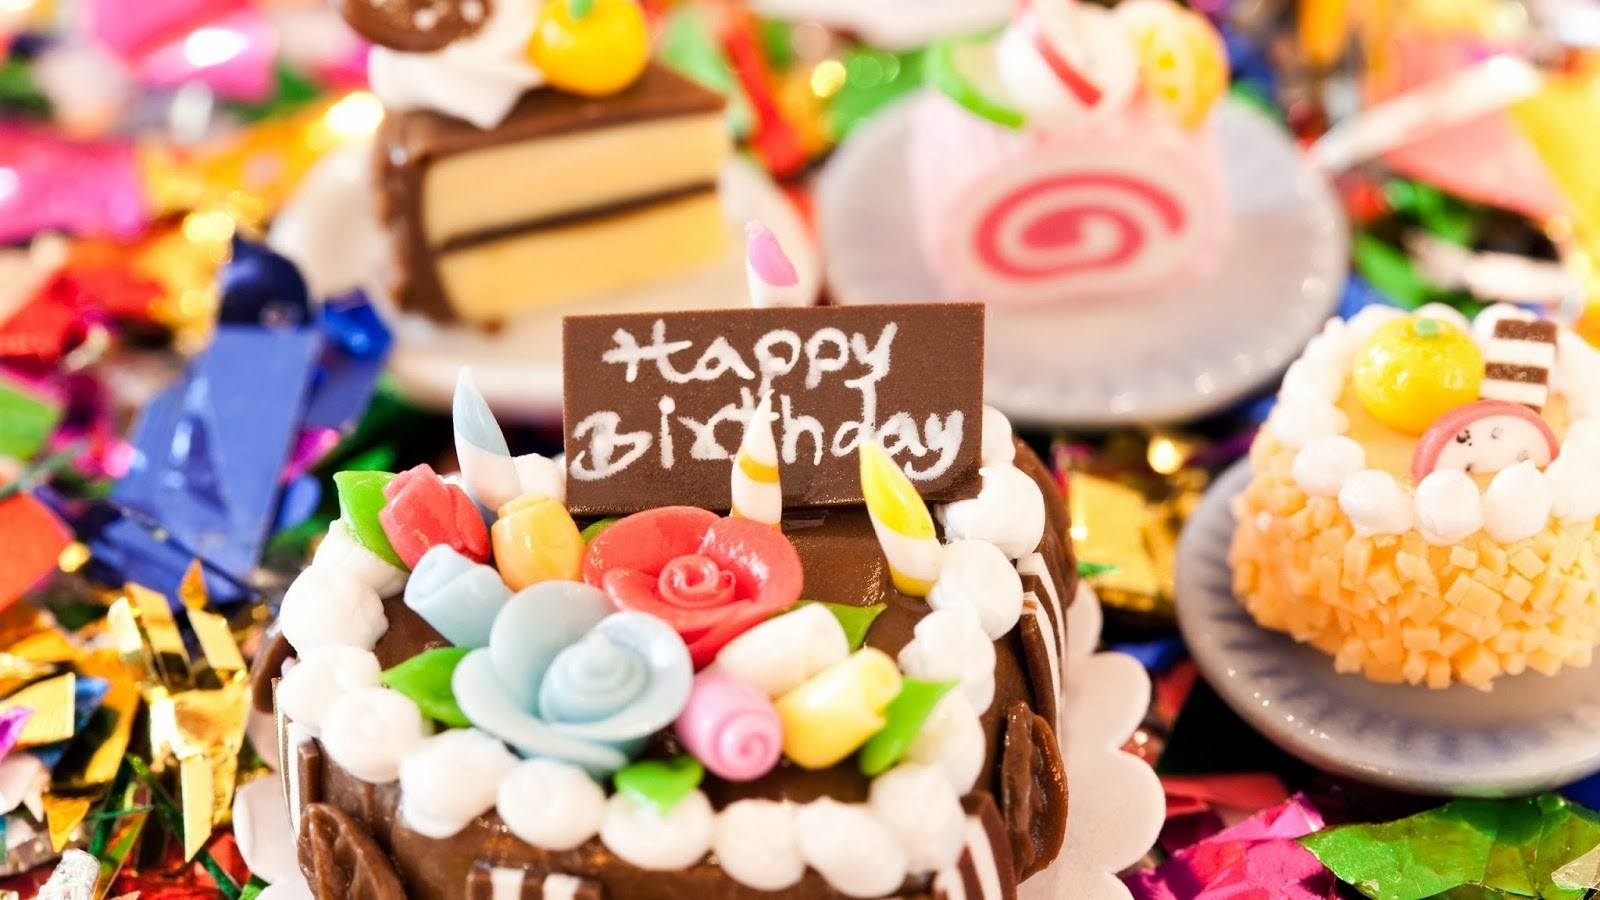 Birthday Wishes Hd Wallpaper Free Download Free Fresh Wallpapers Hd